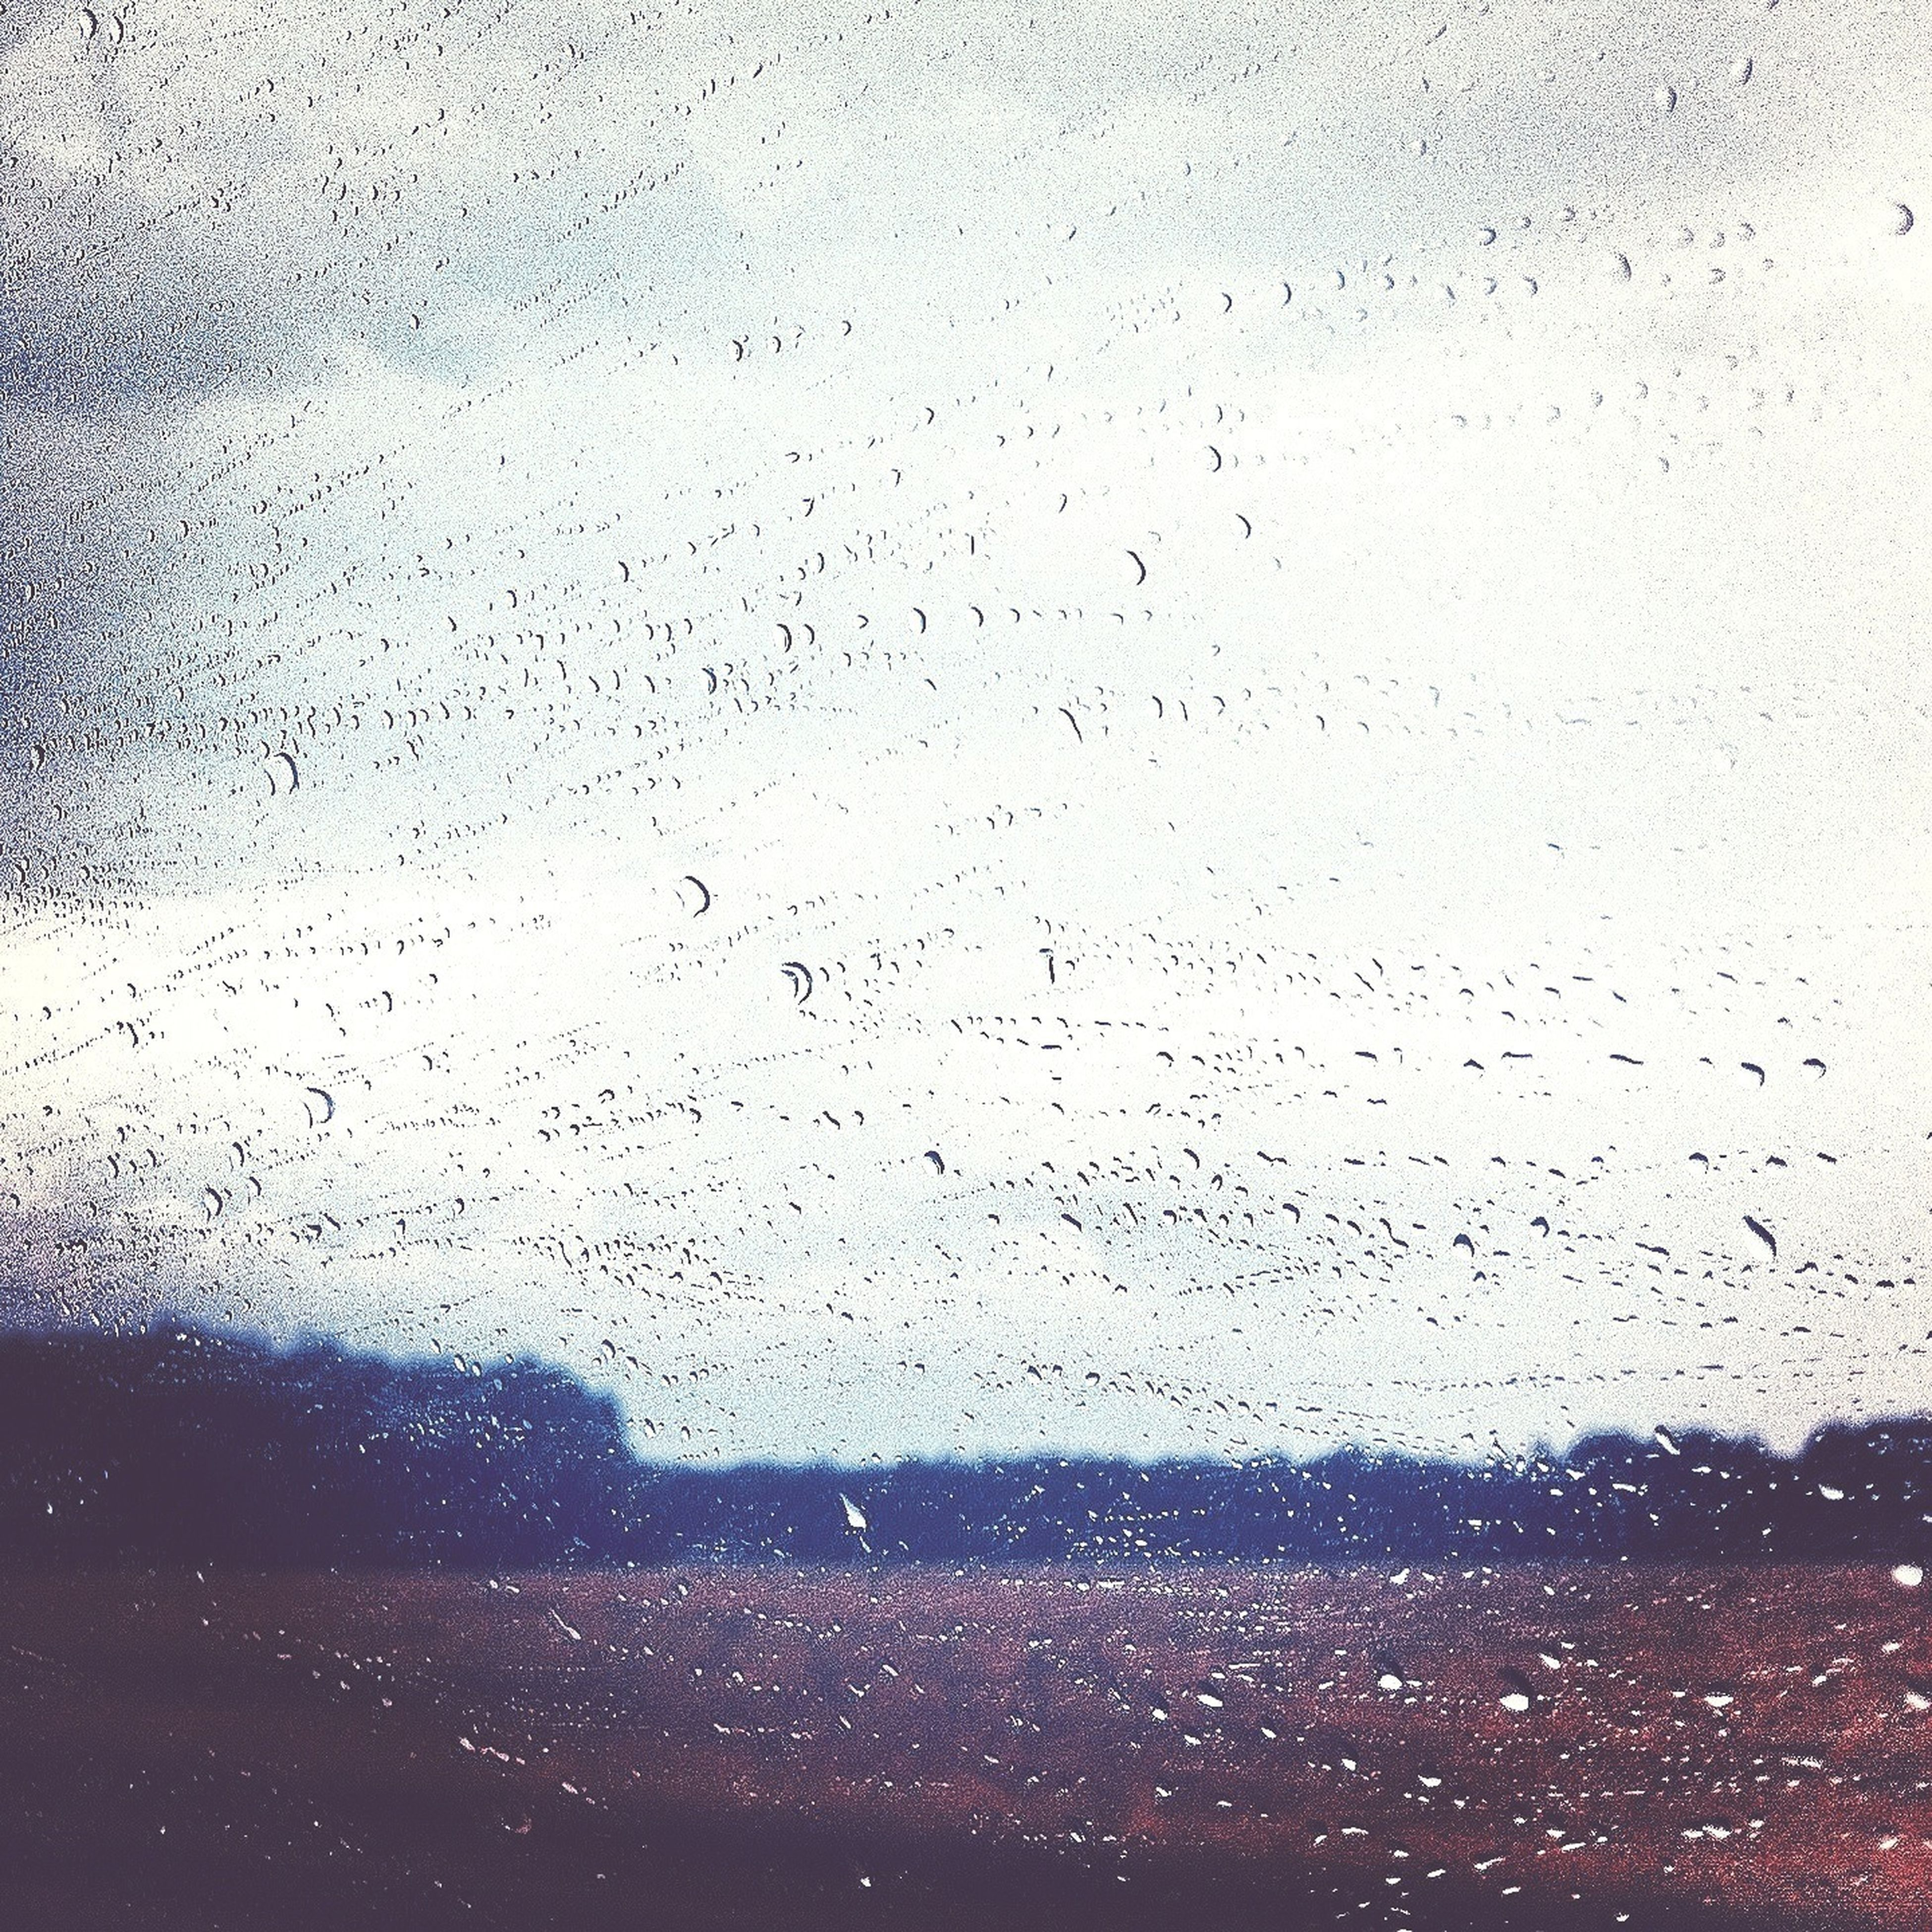 drop, window, wet, transparent, rain, water, glass - material, sky, weather, raindrop, indoors, season, glass, dusk, silhouette, transportation, nature, cloud - sky, looking through window, car